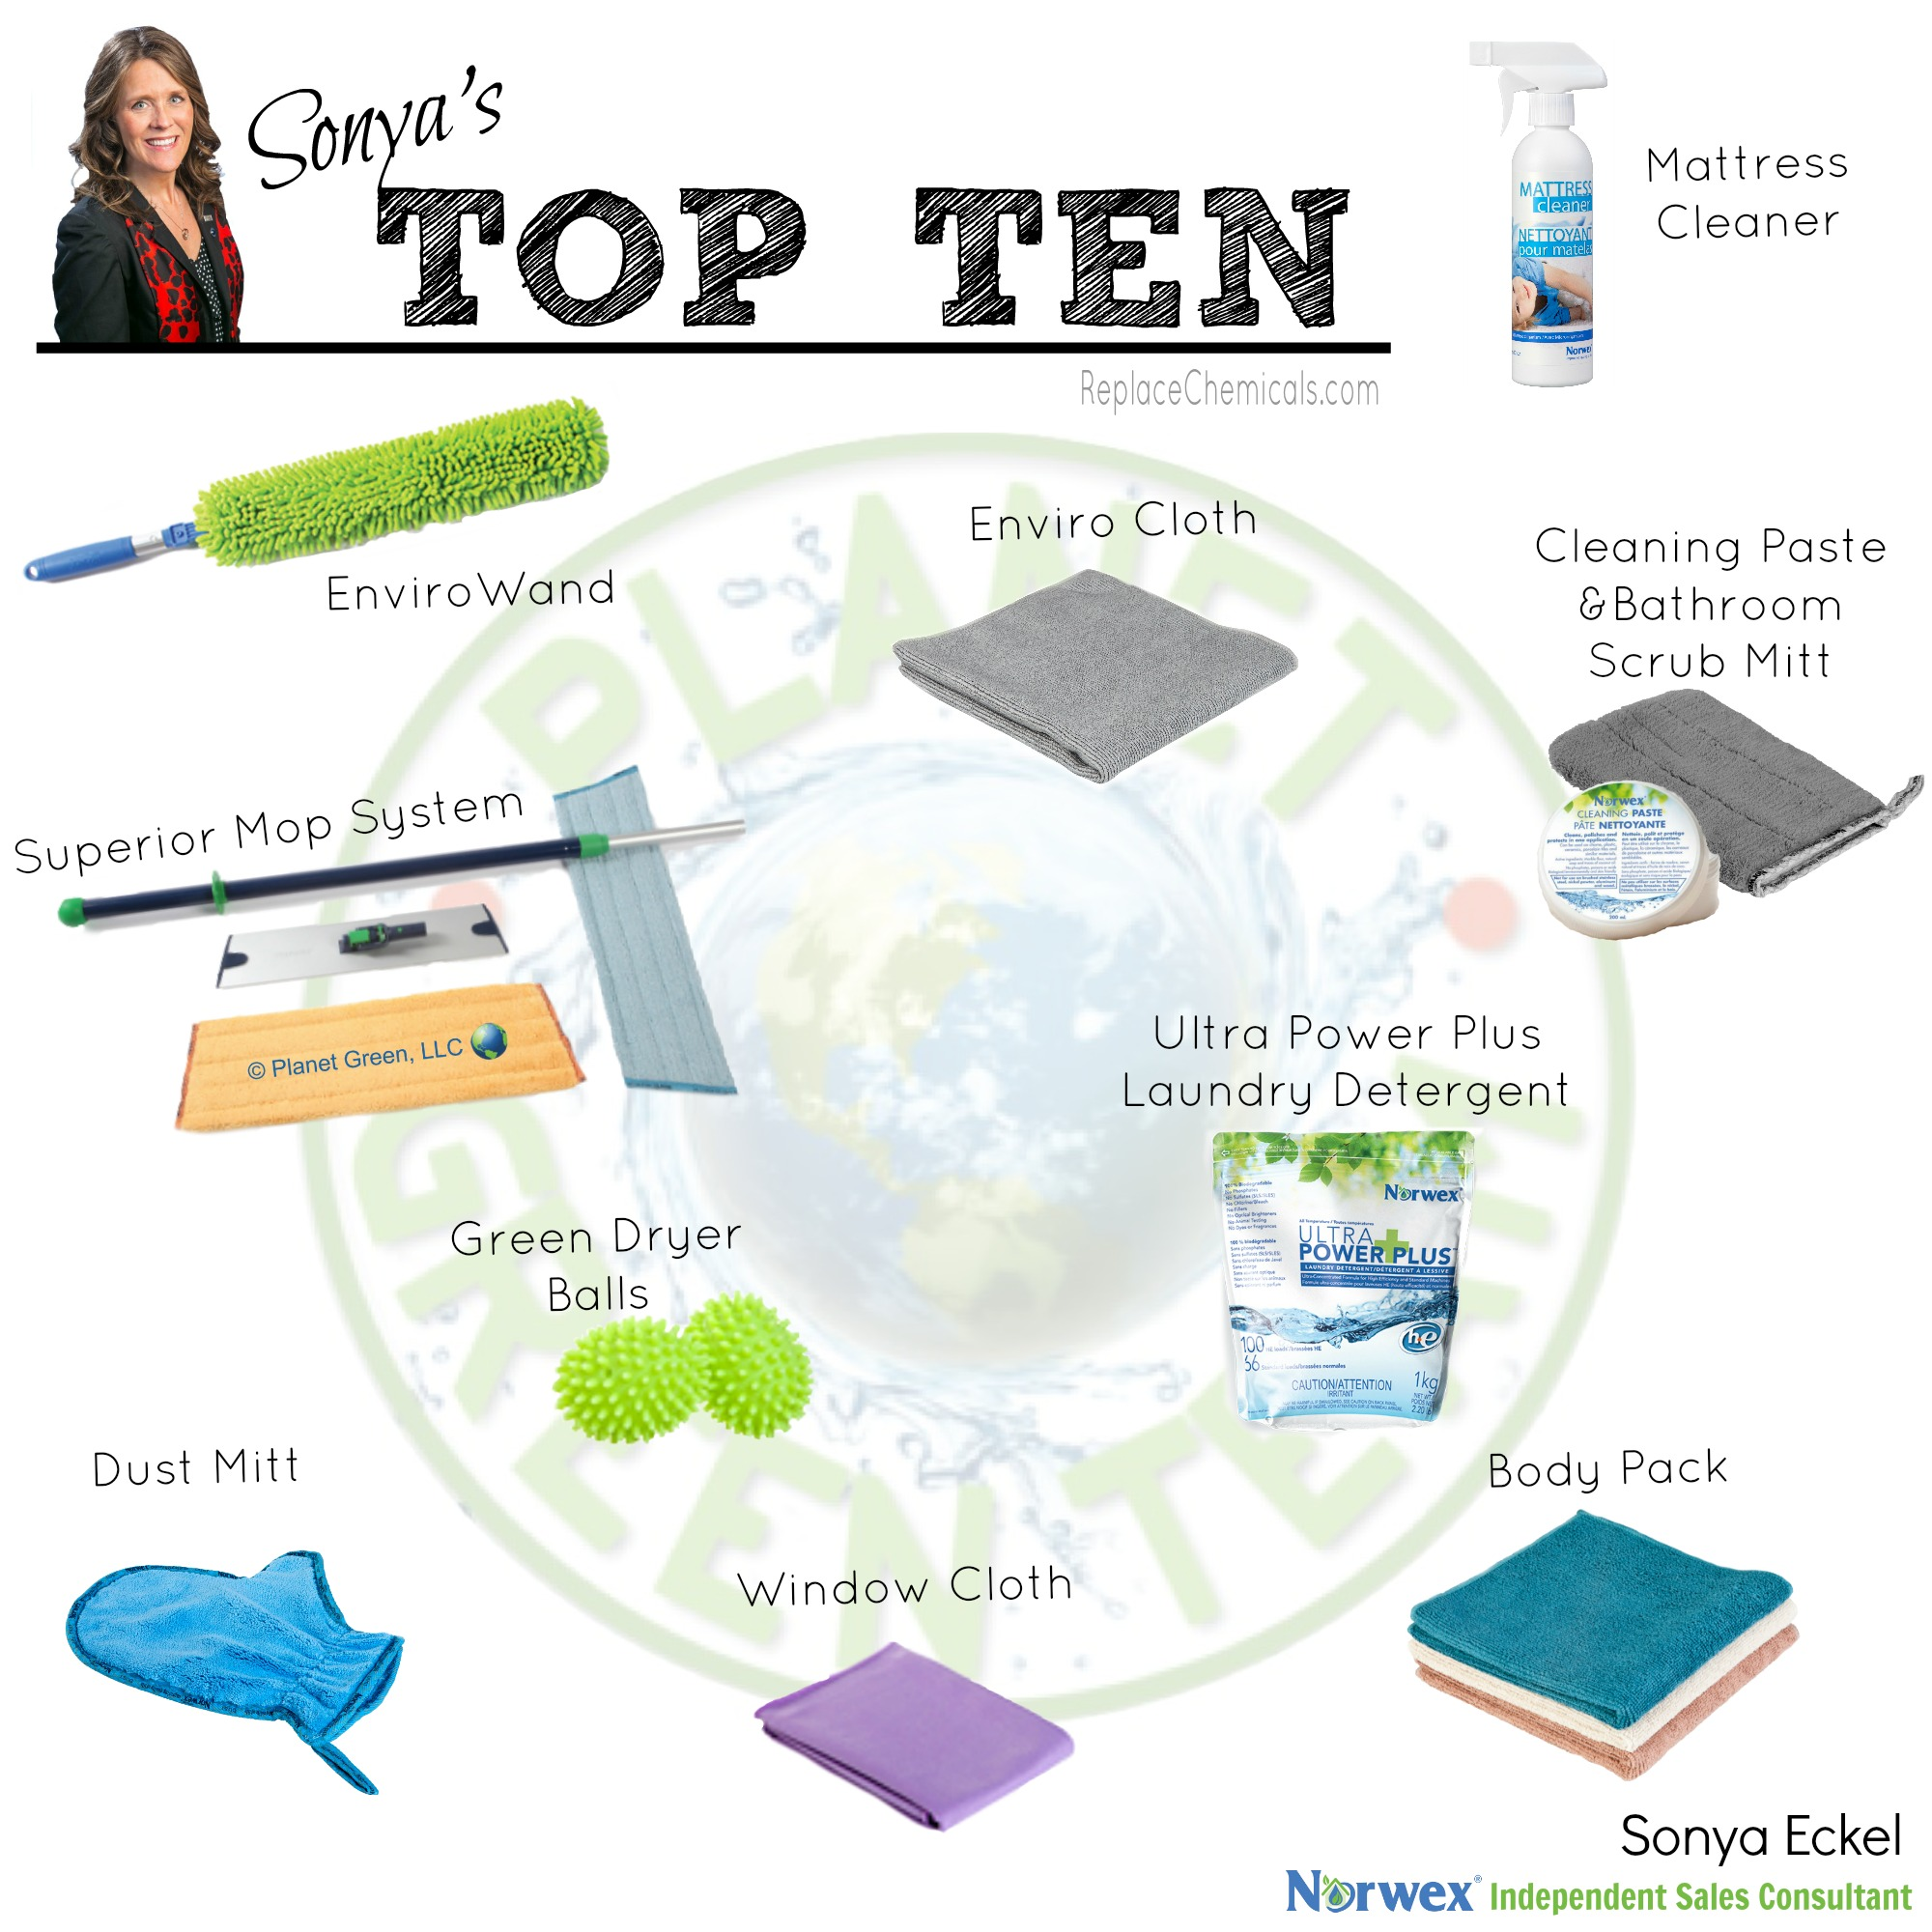 Sonya's Top Ten Norwex Items